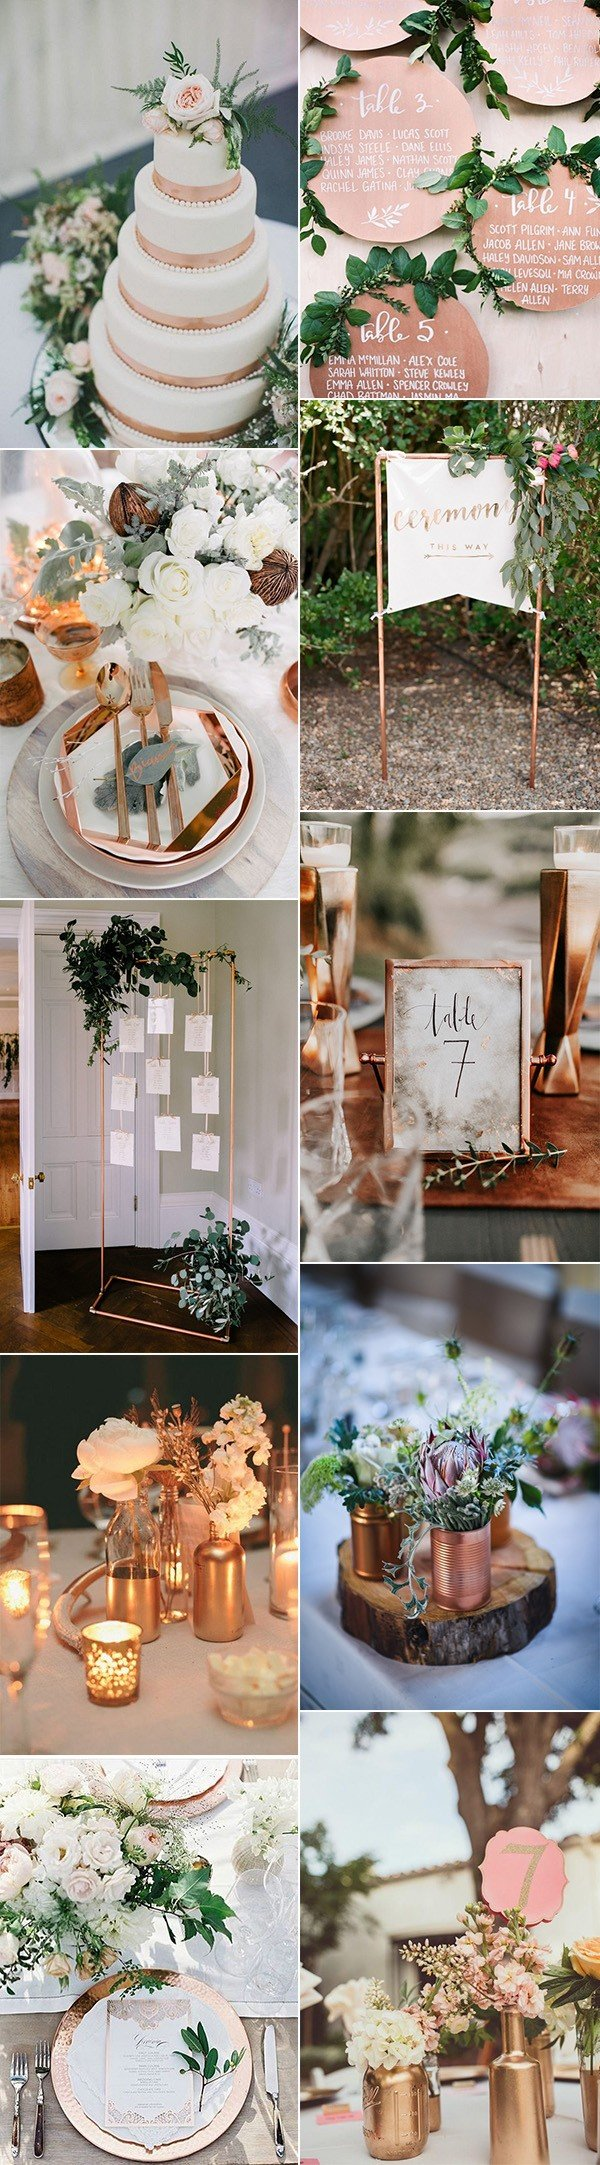 chic metallic bronze and copper wedding color ideas